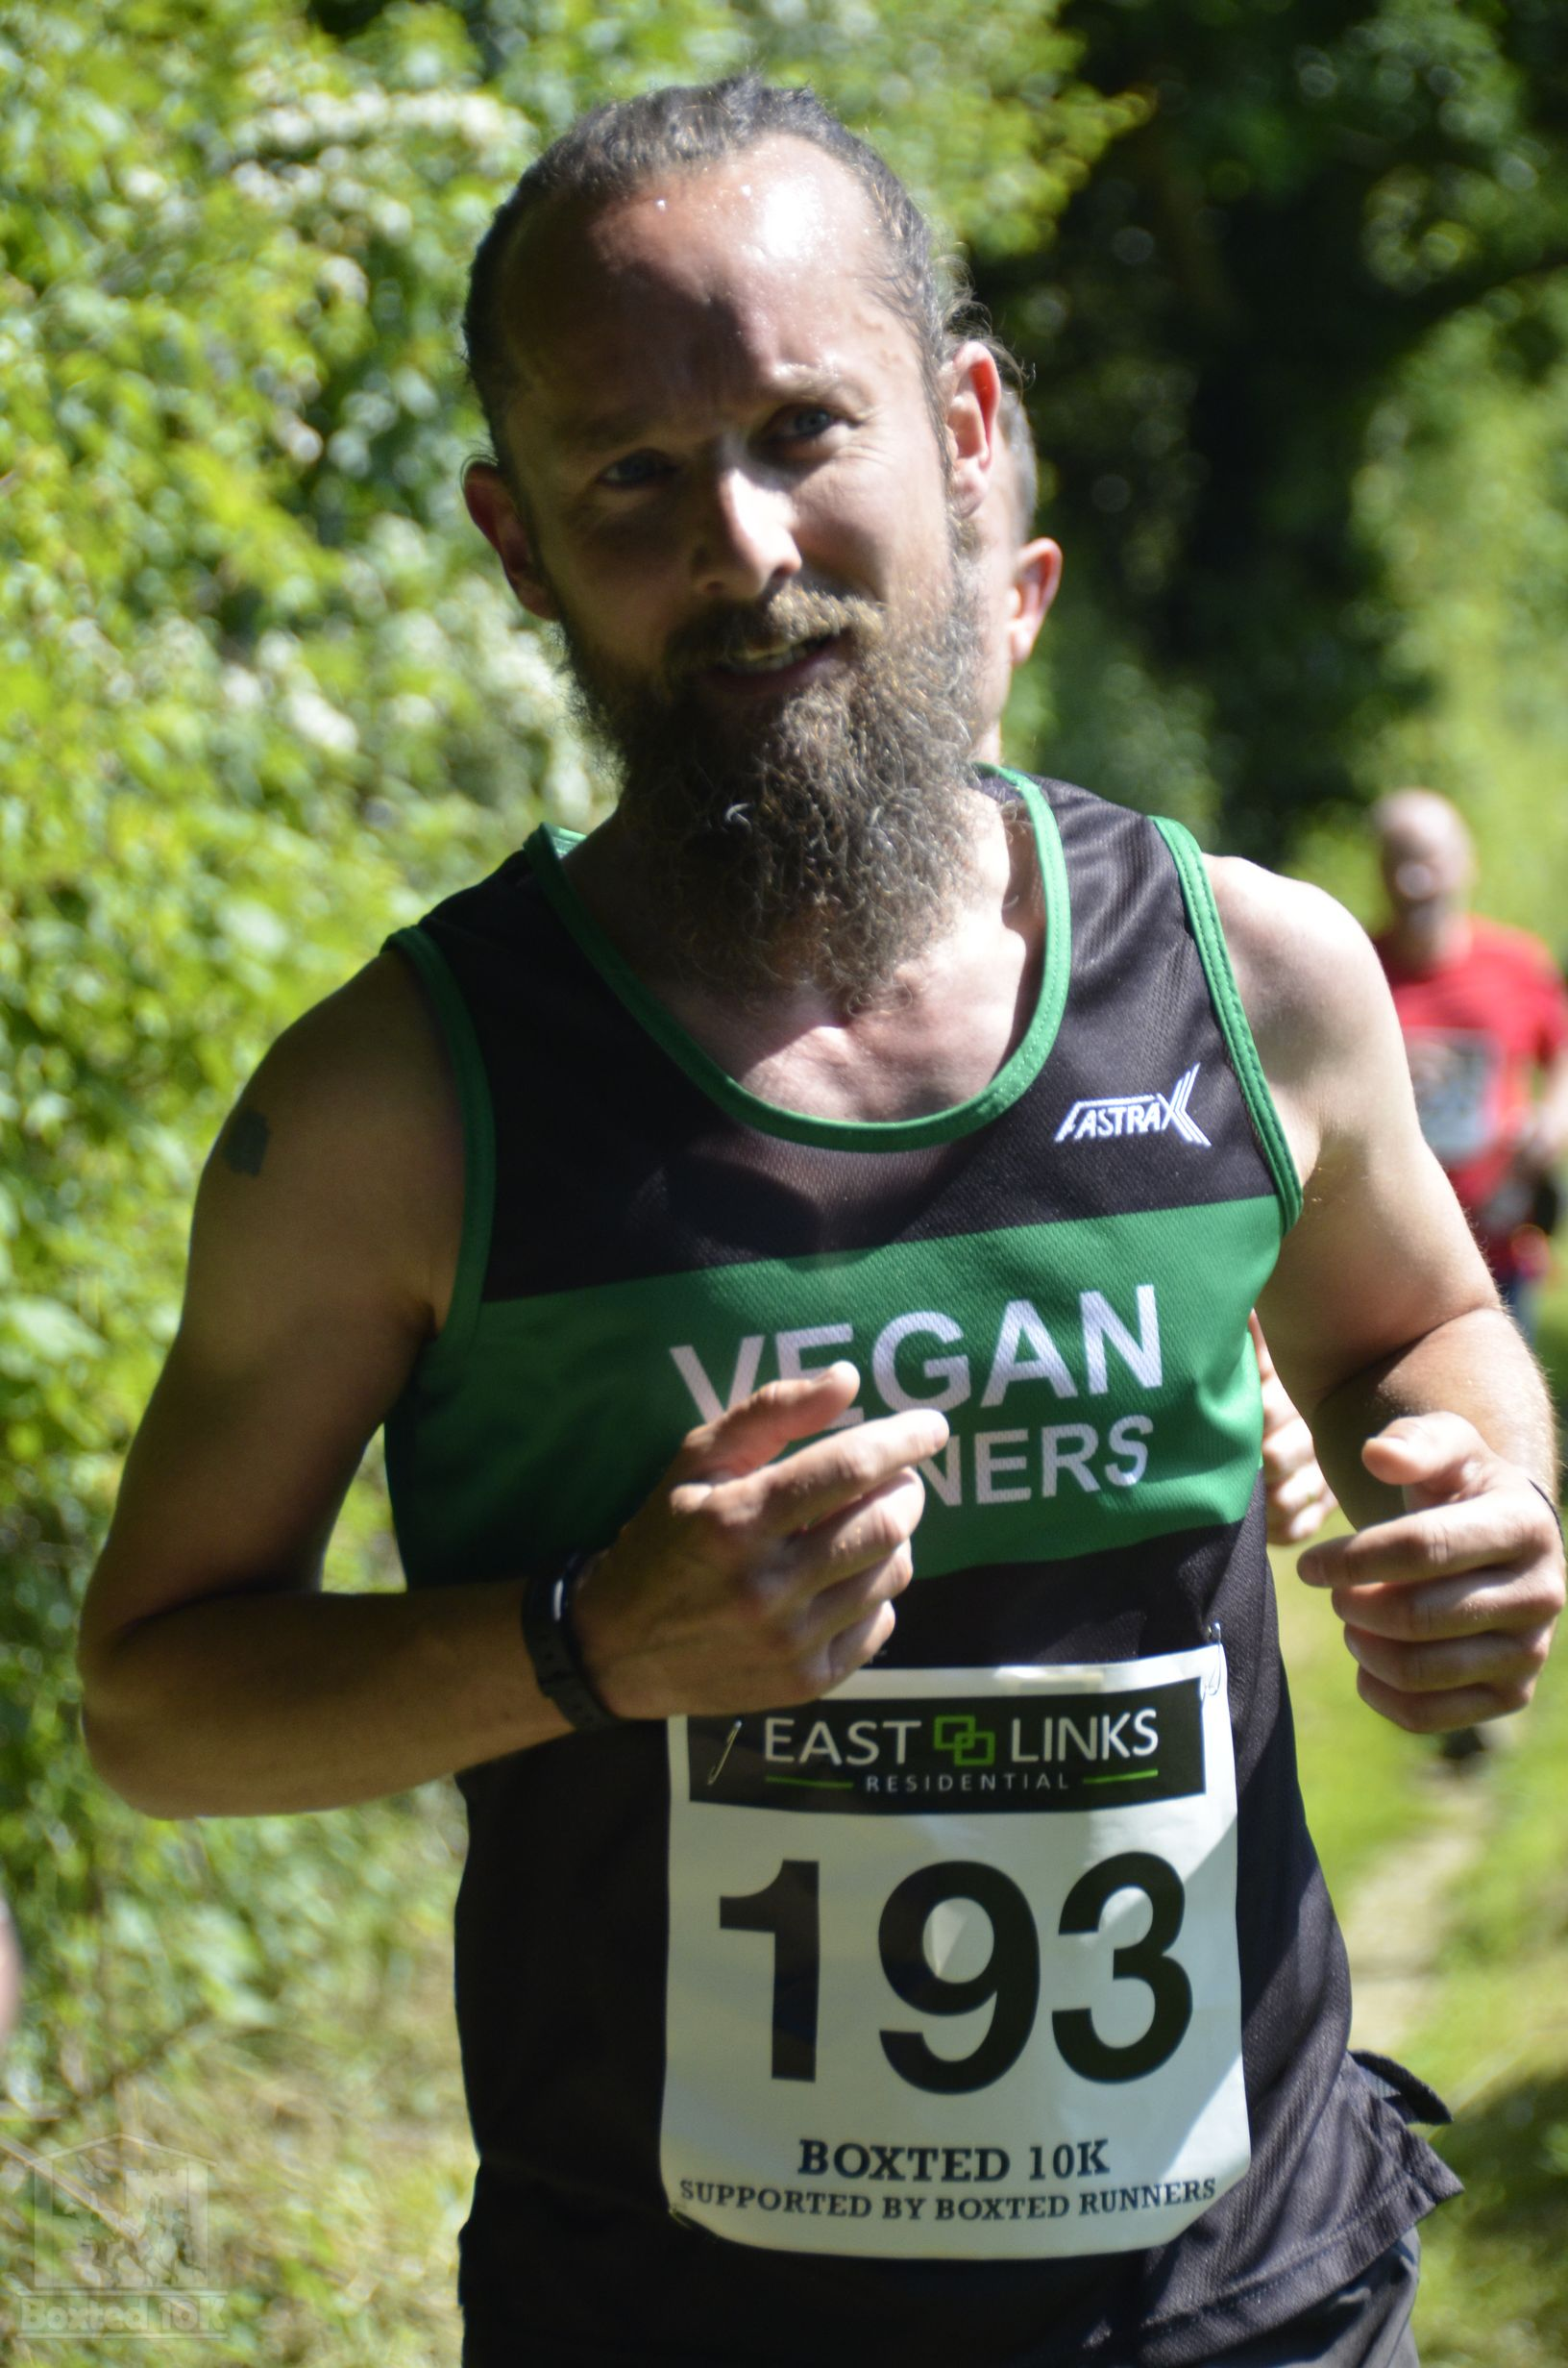 Boxted10k-00247